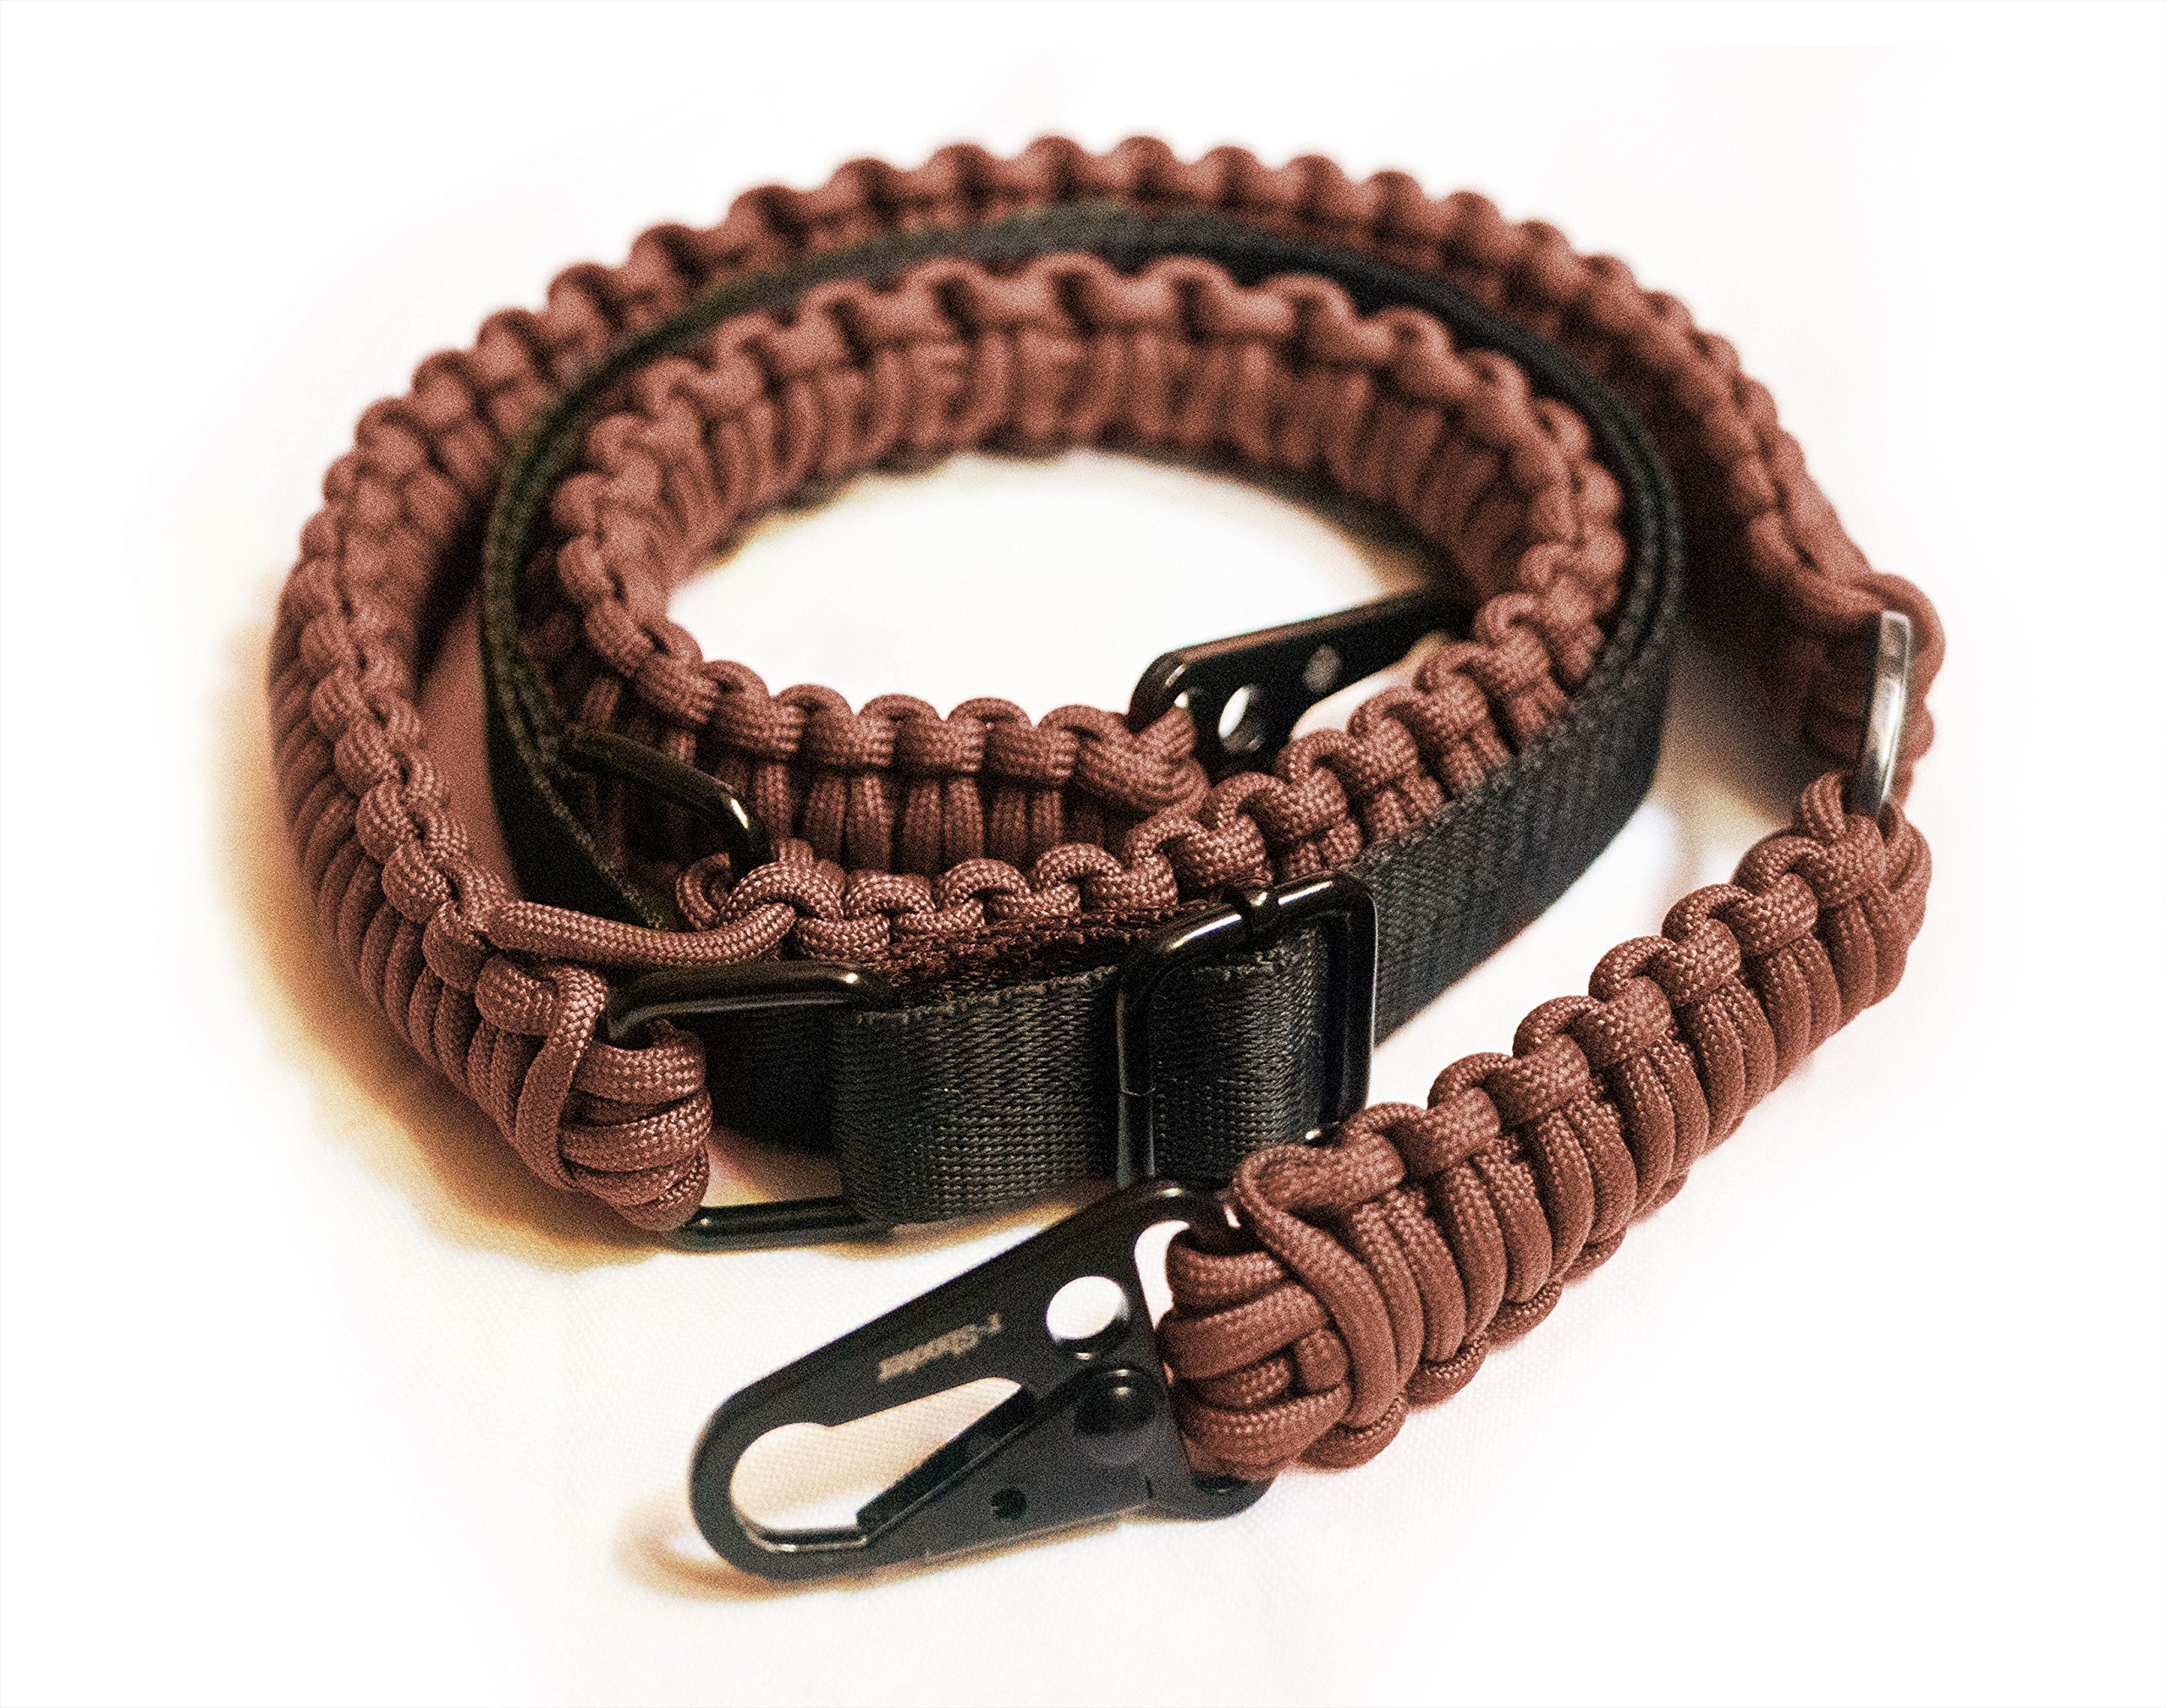 Traditional 2-Point 550 Paracord Rifle Sling | Two Point Gun Shoulder Strap Durable & Adjustable | Ideal for Tactical Shooting, Hunting& Emergency Situations (Brown+Bracelet)